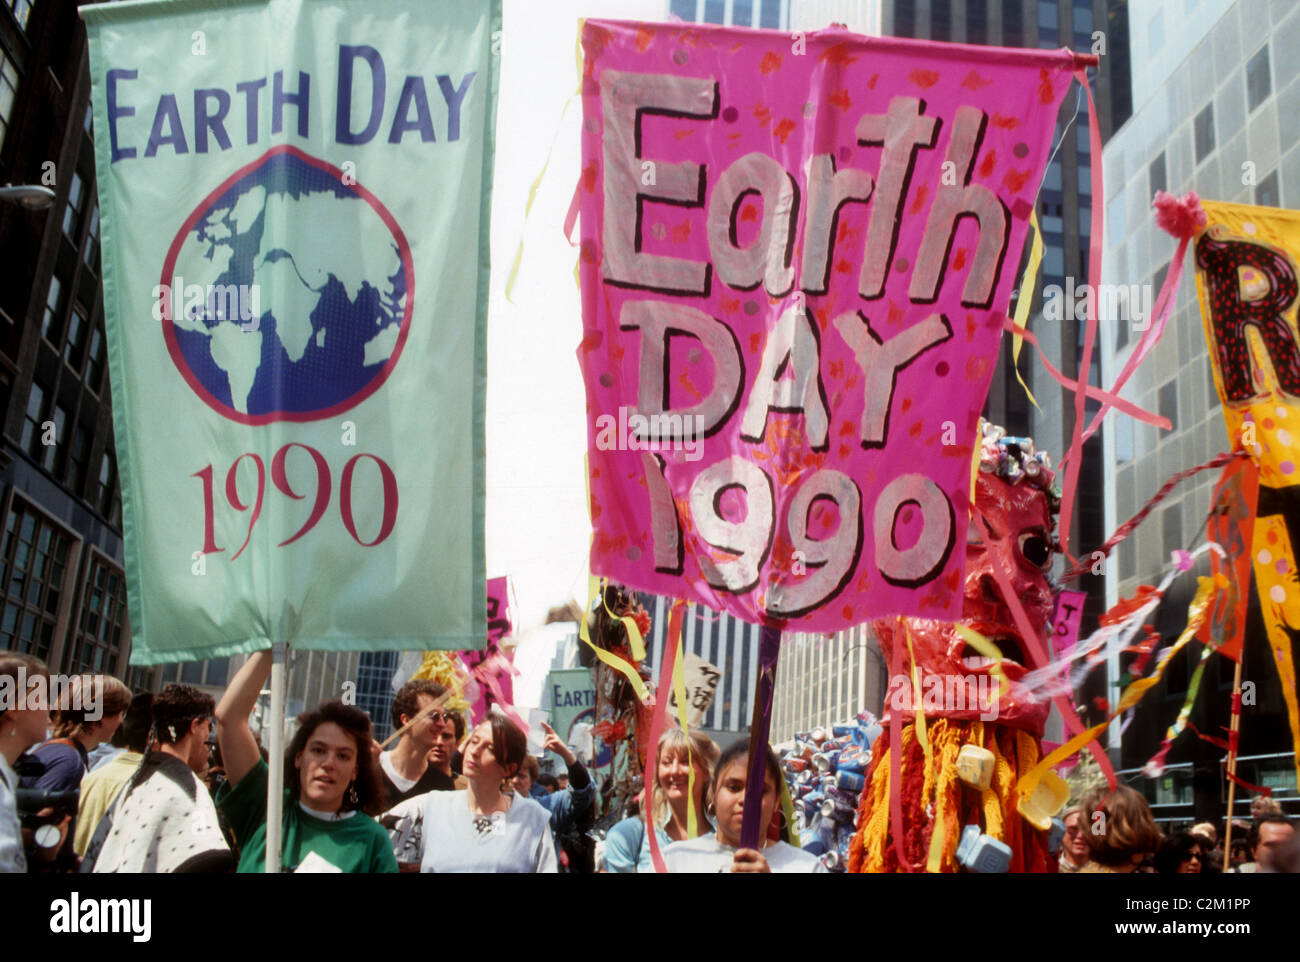 Earth Day Parade and festival in New York on Earth Day, April 22, 1990. (© Frances M. Roberts) - Stock Image